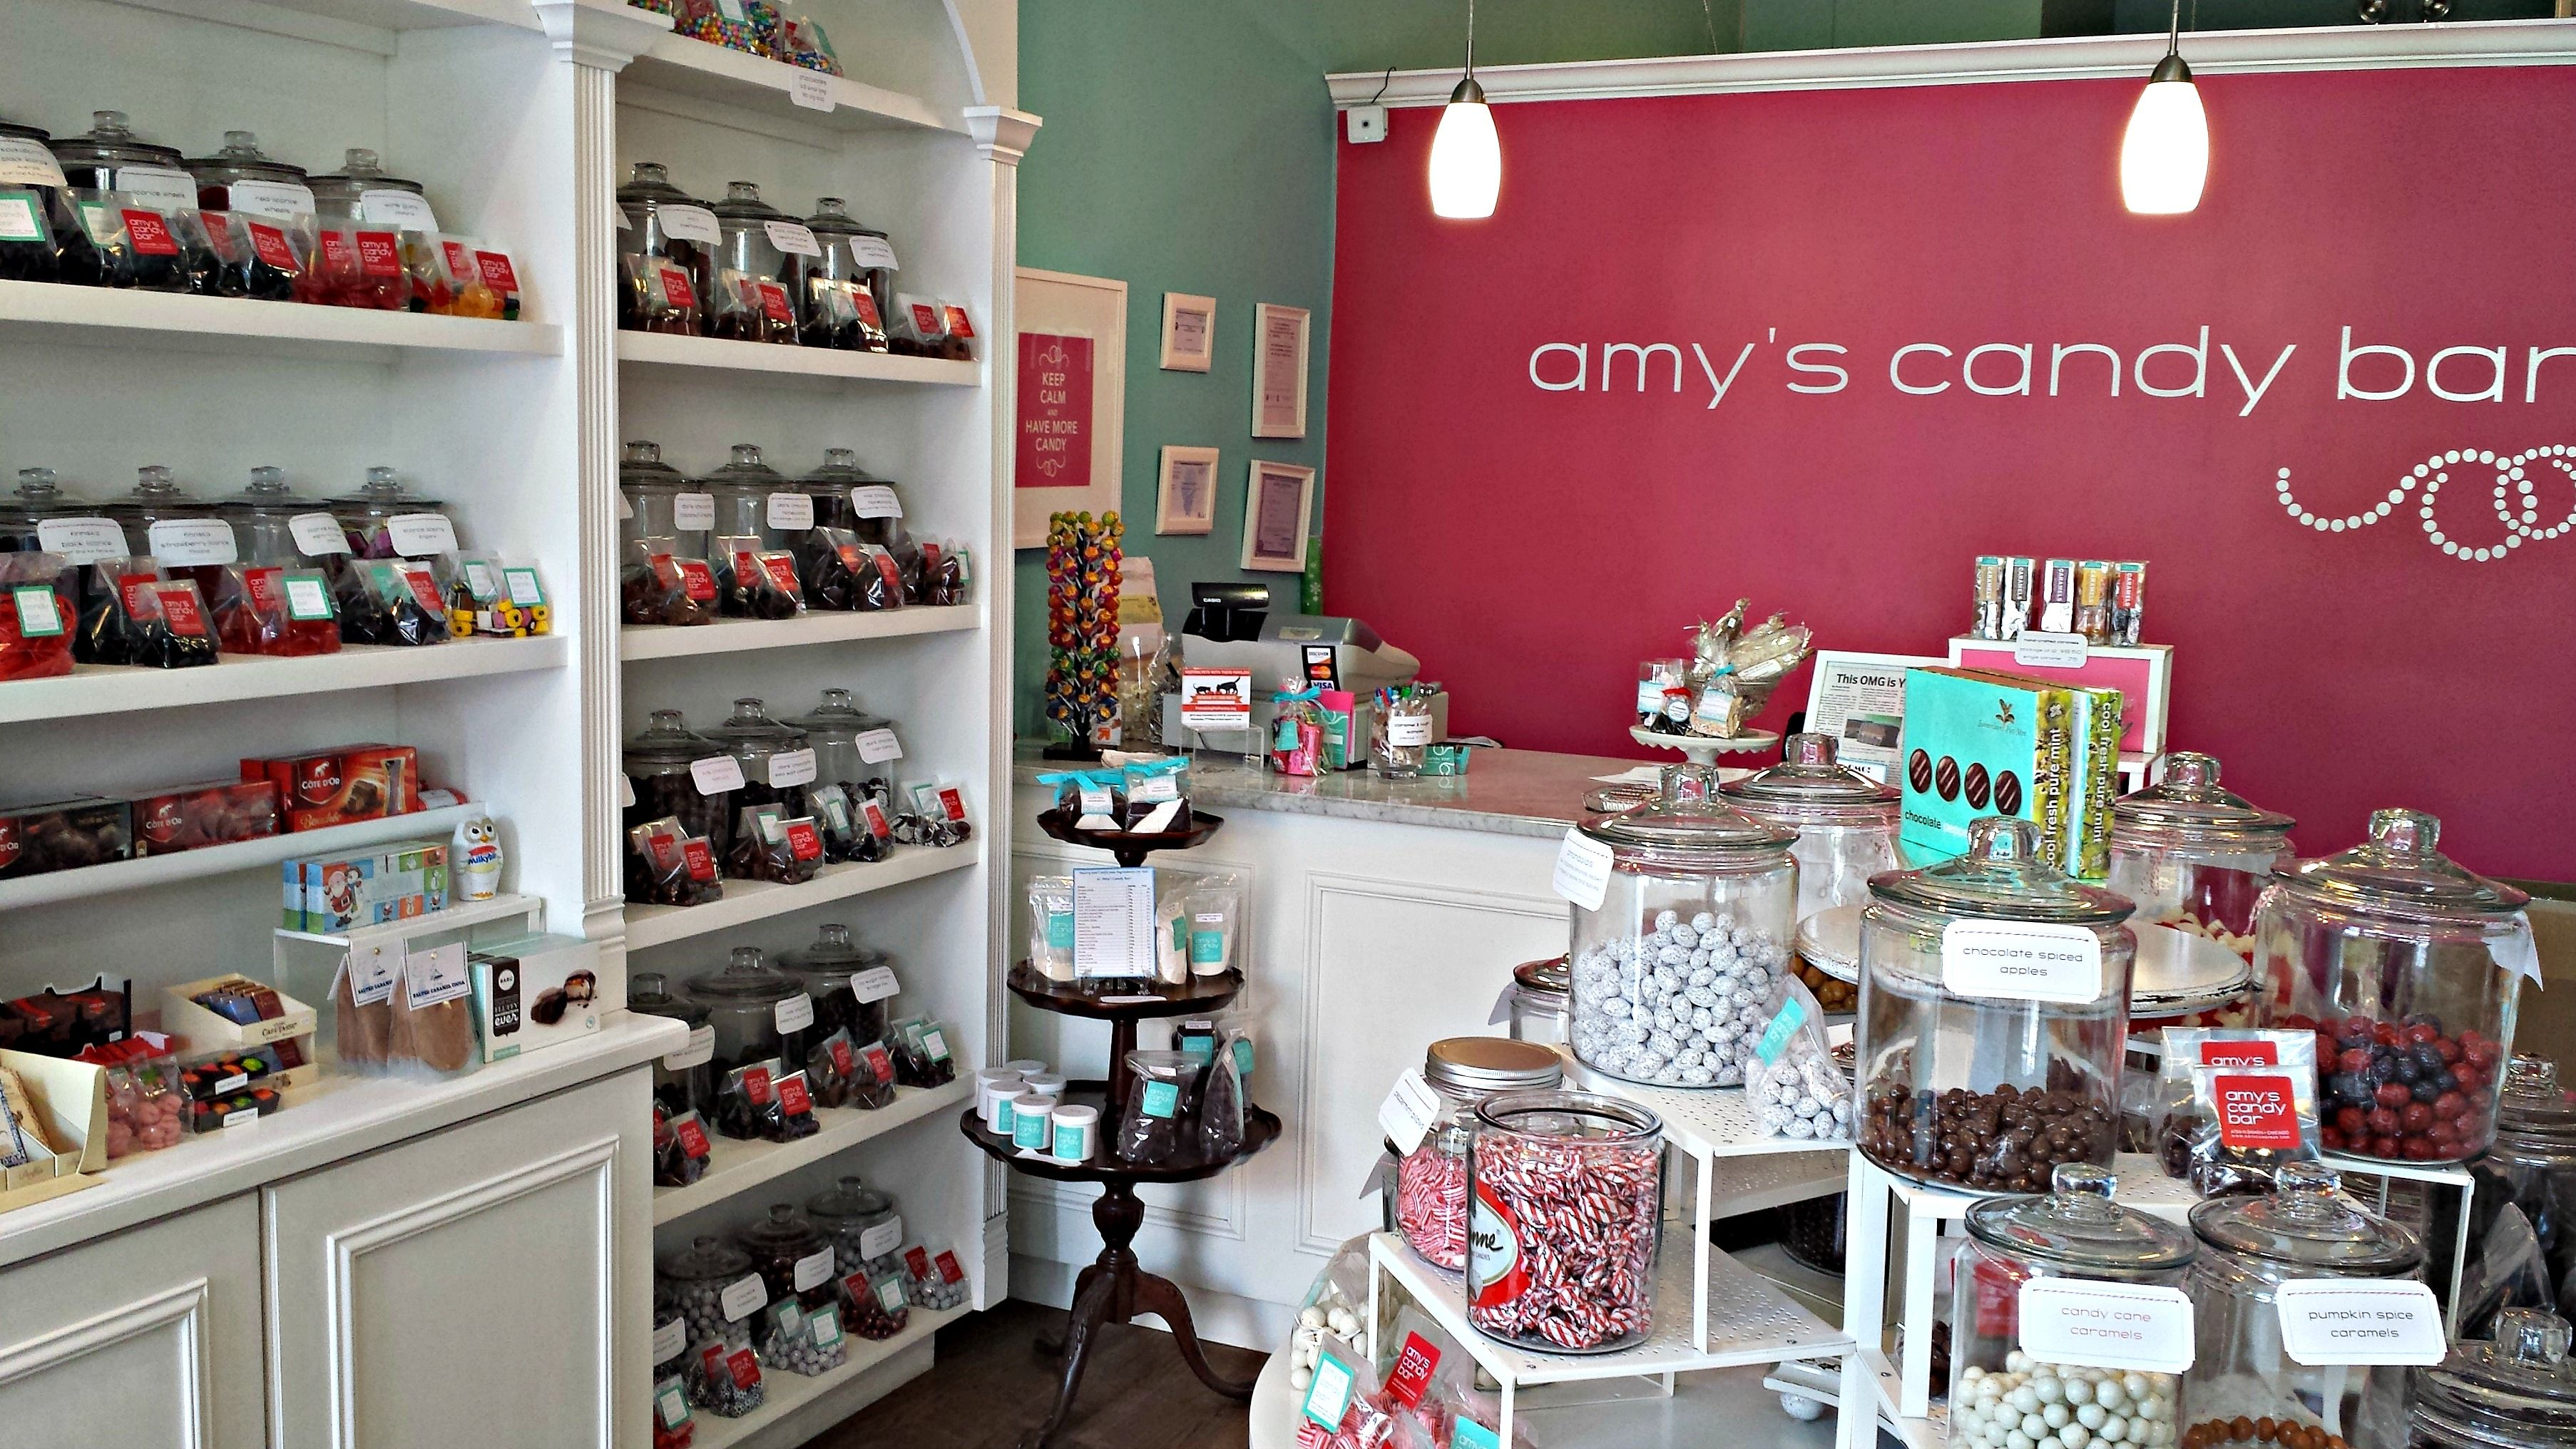 Opening her own sweet shop in 2011 fulfilled a dream for Amy Hansen, who drew on her training at the French Pastry School and a background in marketing and accounting. The glass jars neatly lining the shelves are full of rare and imported candy, licorice, and gummies. But regulars turn up for the handmade turtles and sea-salt caramels.